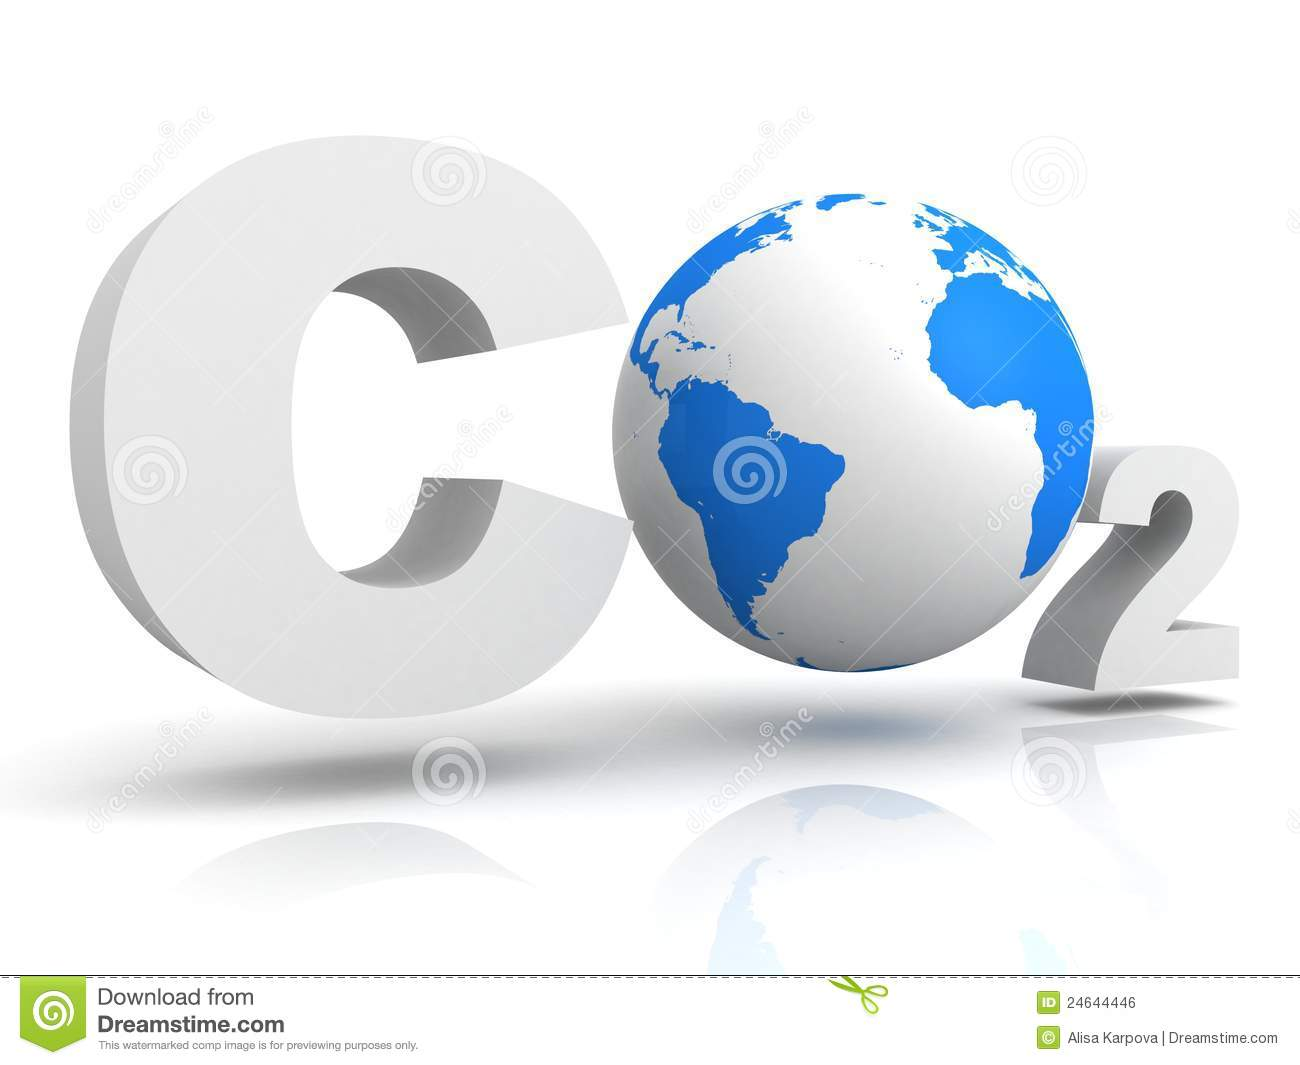 planetarium globe with Royalty Free Stock Image Chemical Symbol Co2 Carbon Dioxide Globe Image24644446 on Aristotle besides News Global Warming likewise Current Events likewise Stock Illustration Pla s Solar System  parison Size Our Image46305205 additionally Globe Terrestre Design Full Circle Reflection.